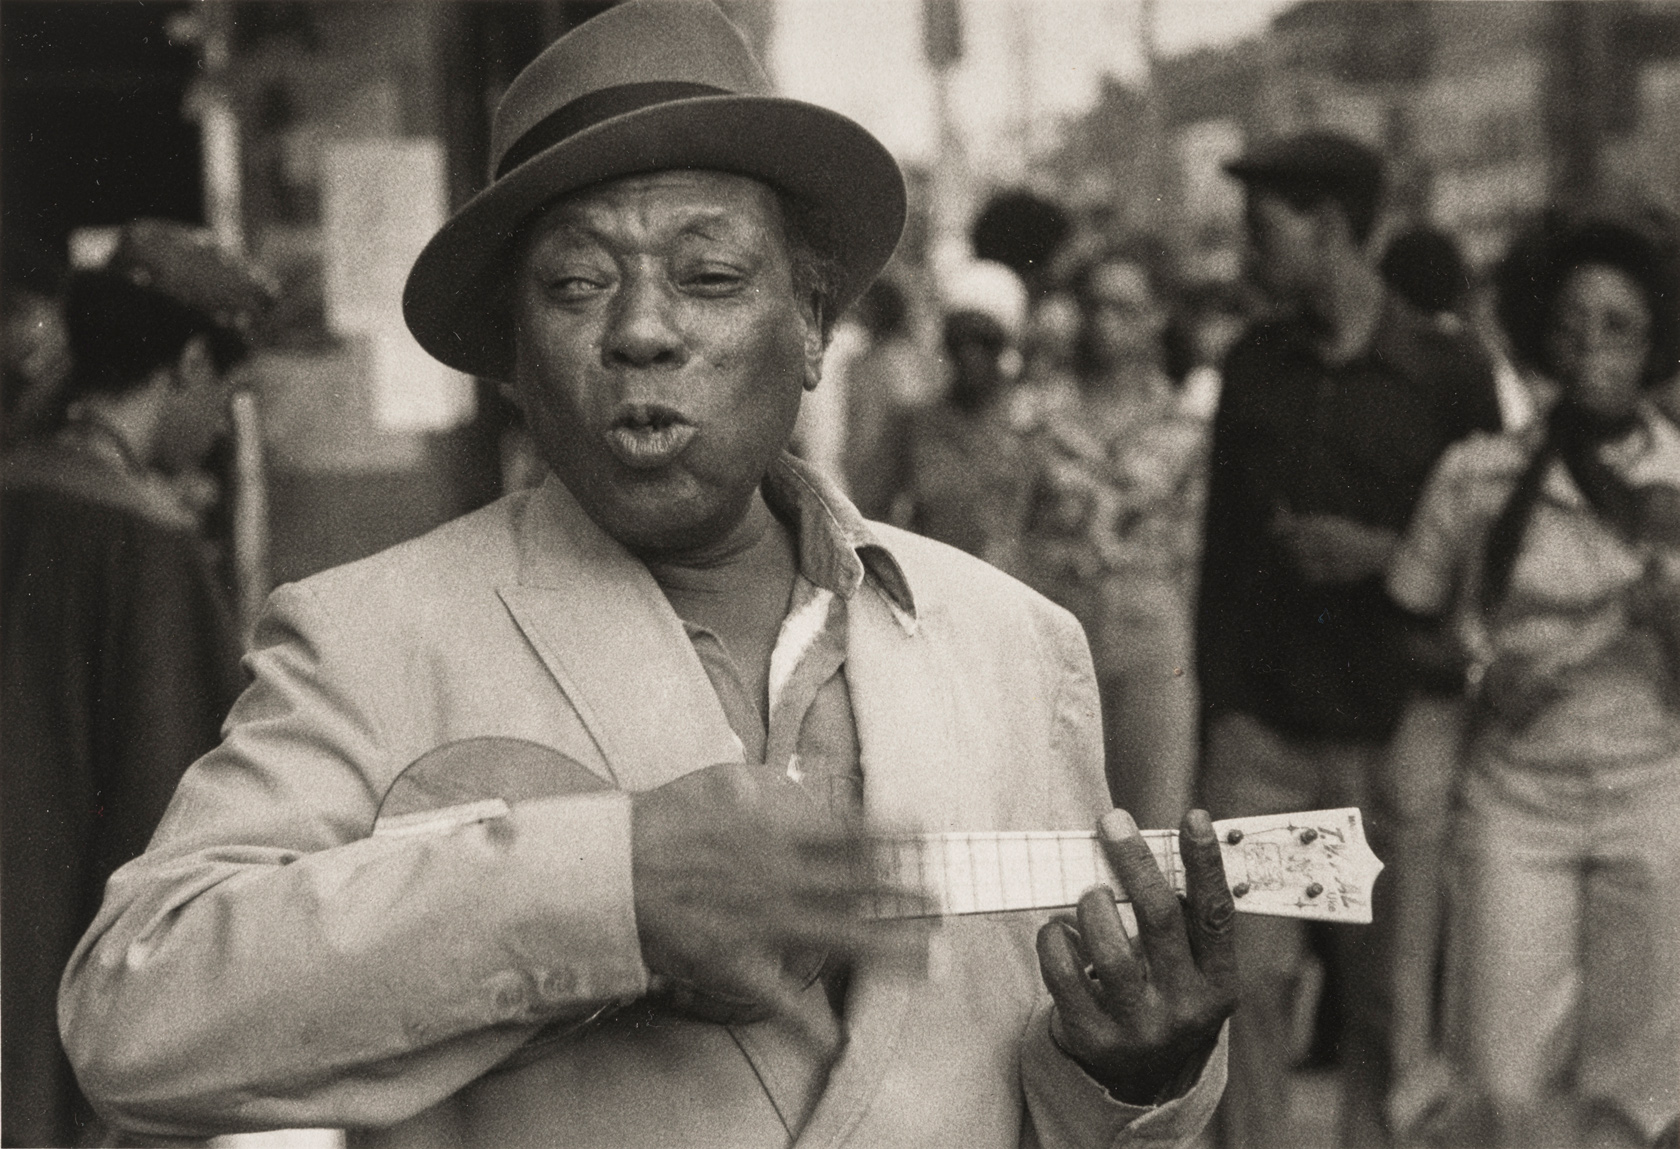 Dawoud Bey, 'A Man with a Ukelele,' Harlem USA, Courtesy of Dawoud Bey